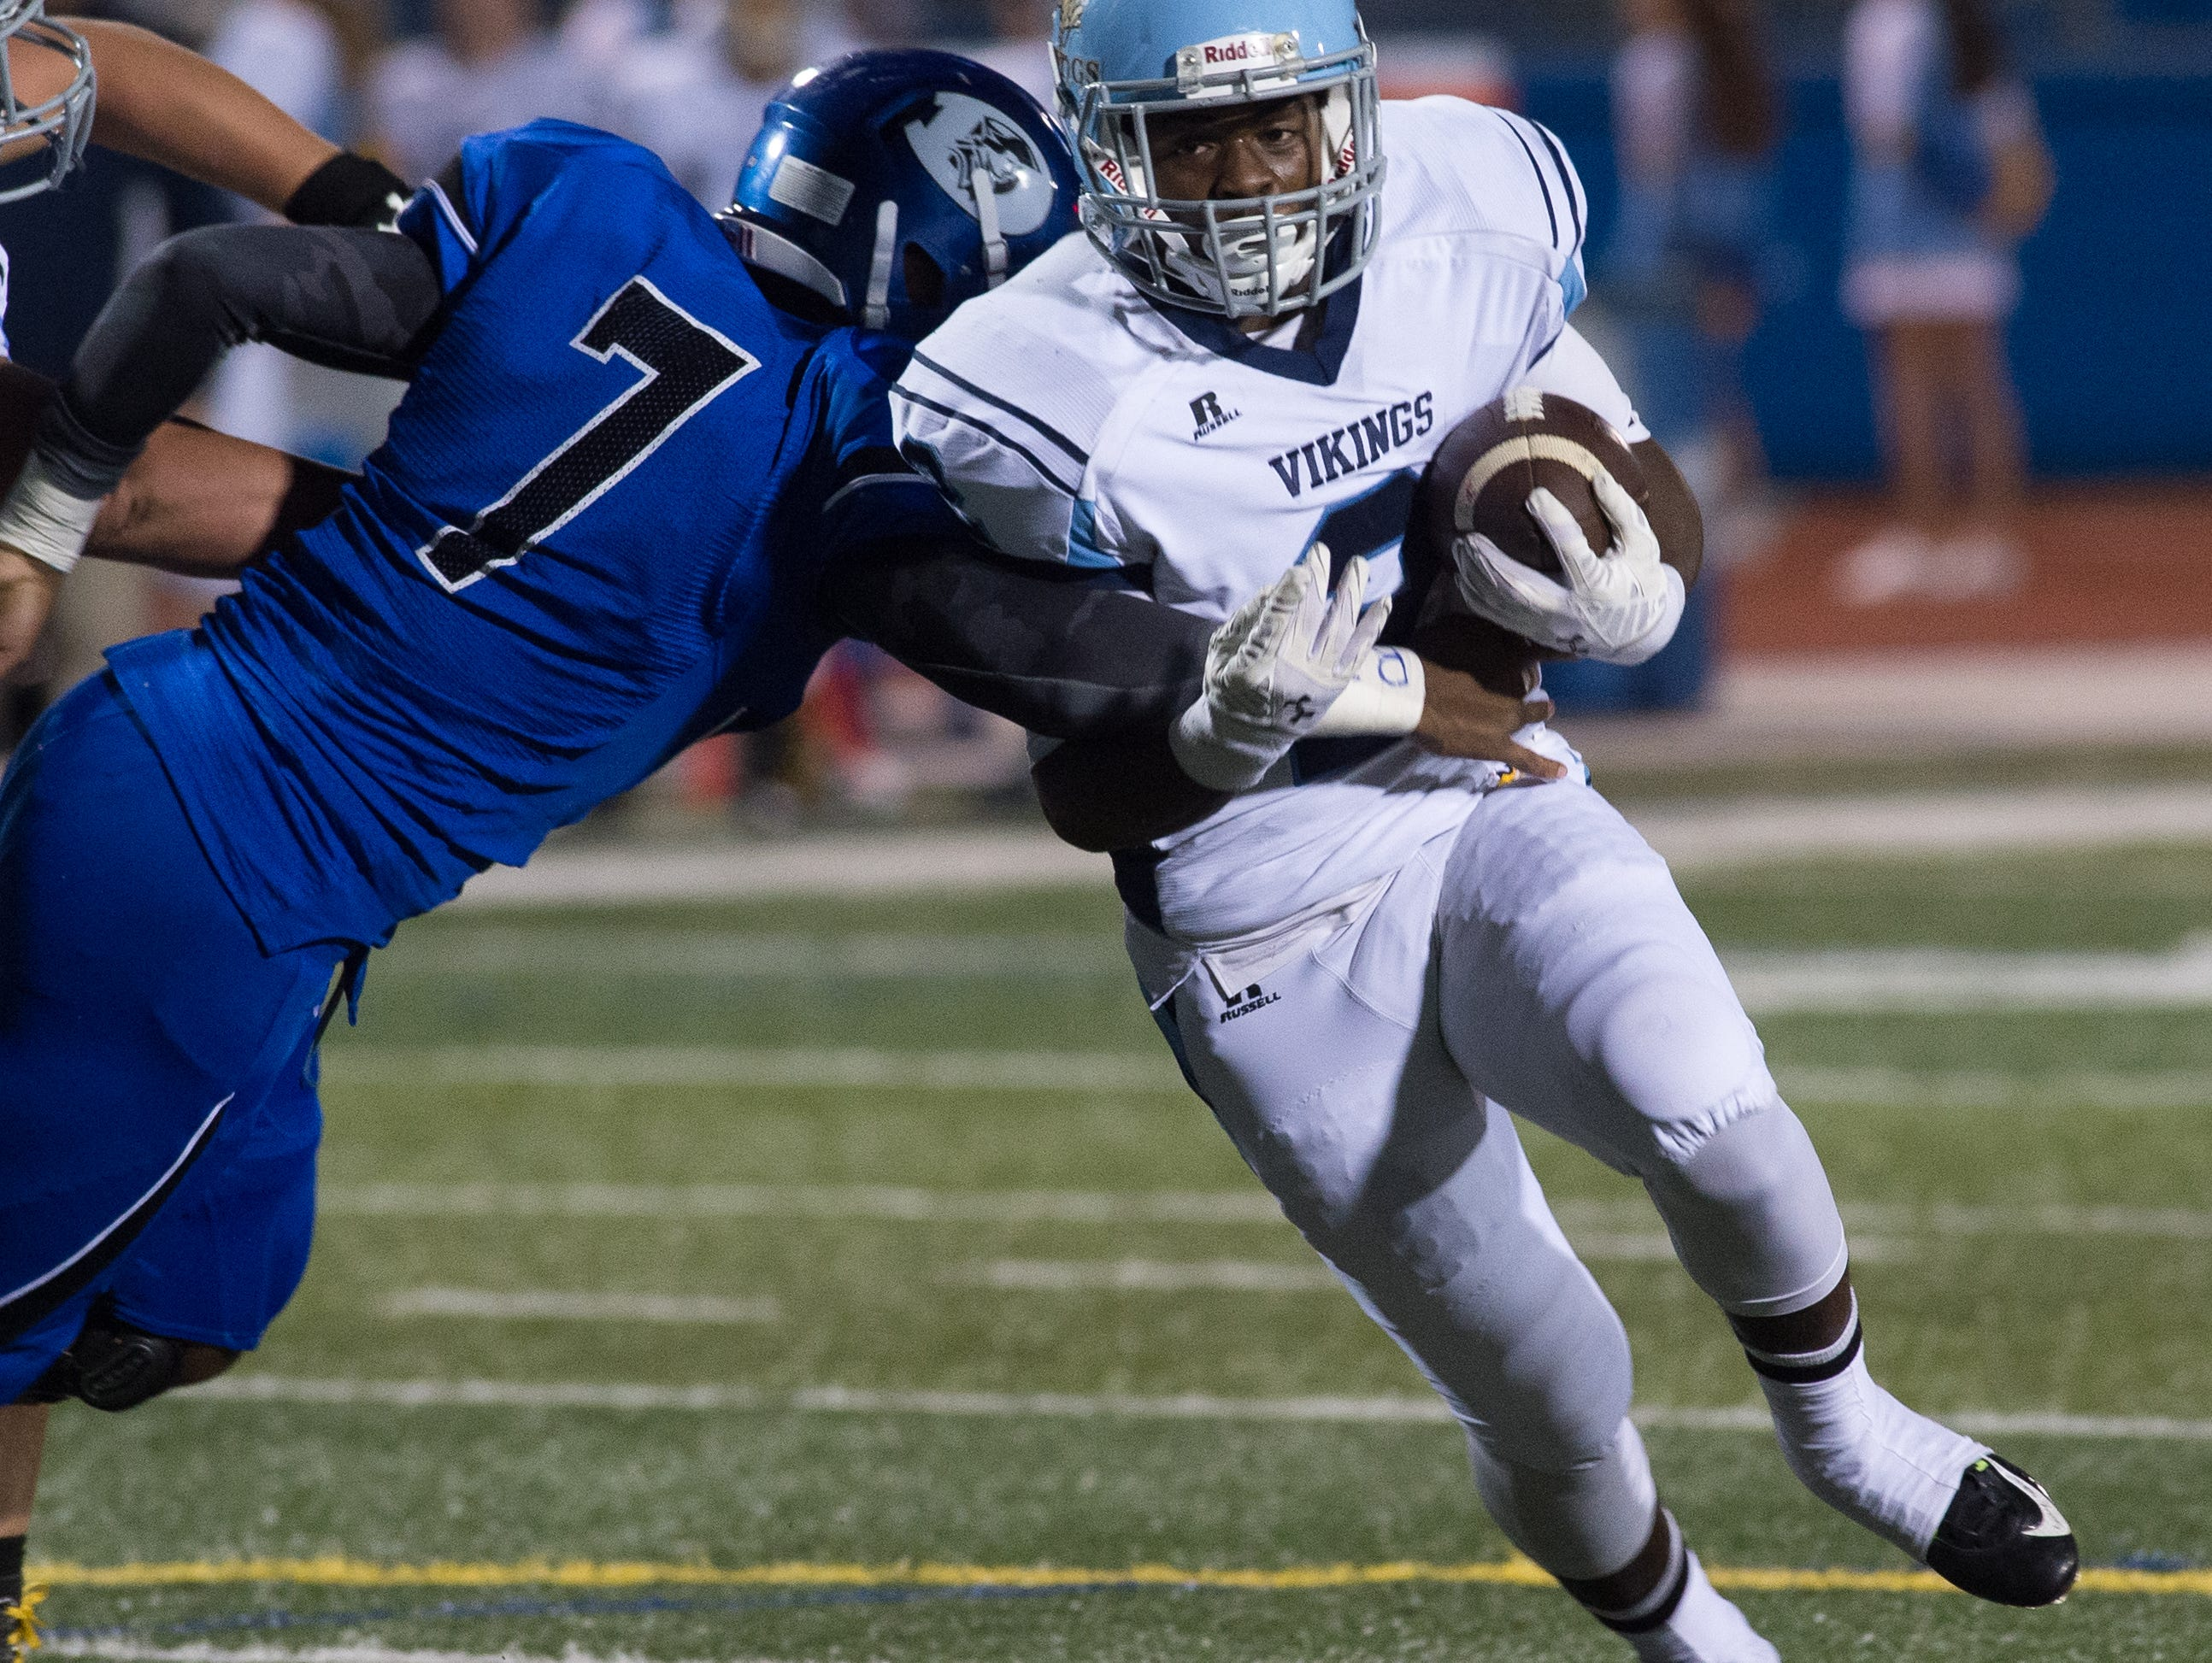 Cape Henlopen's Rasheed Woods (2) runs the ball for a touchdown in the first quarter against Dover.